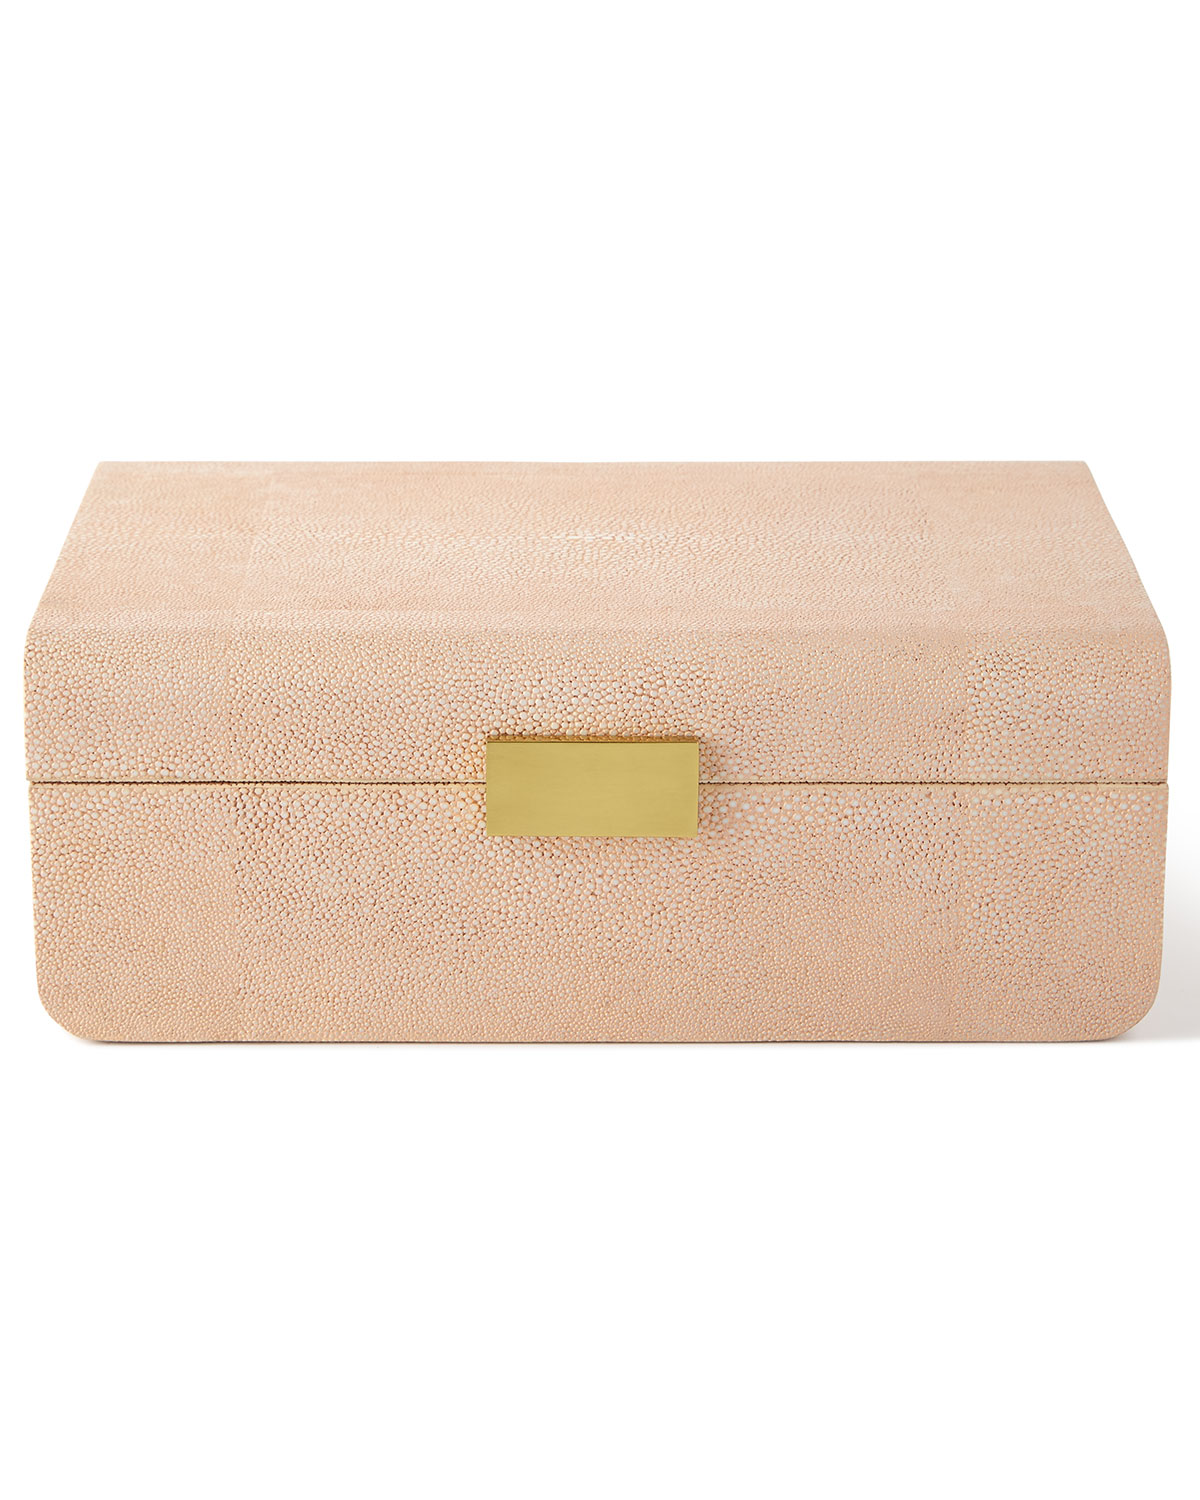 AERIN Large Blush Modern Shagreen Decorative Box